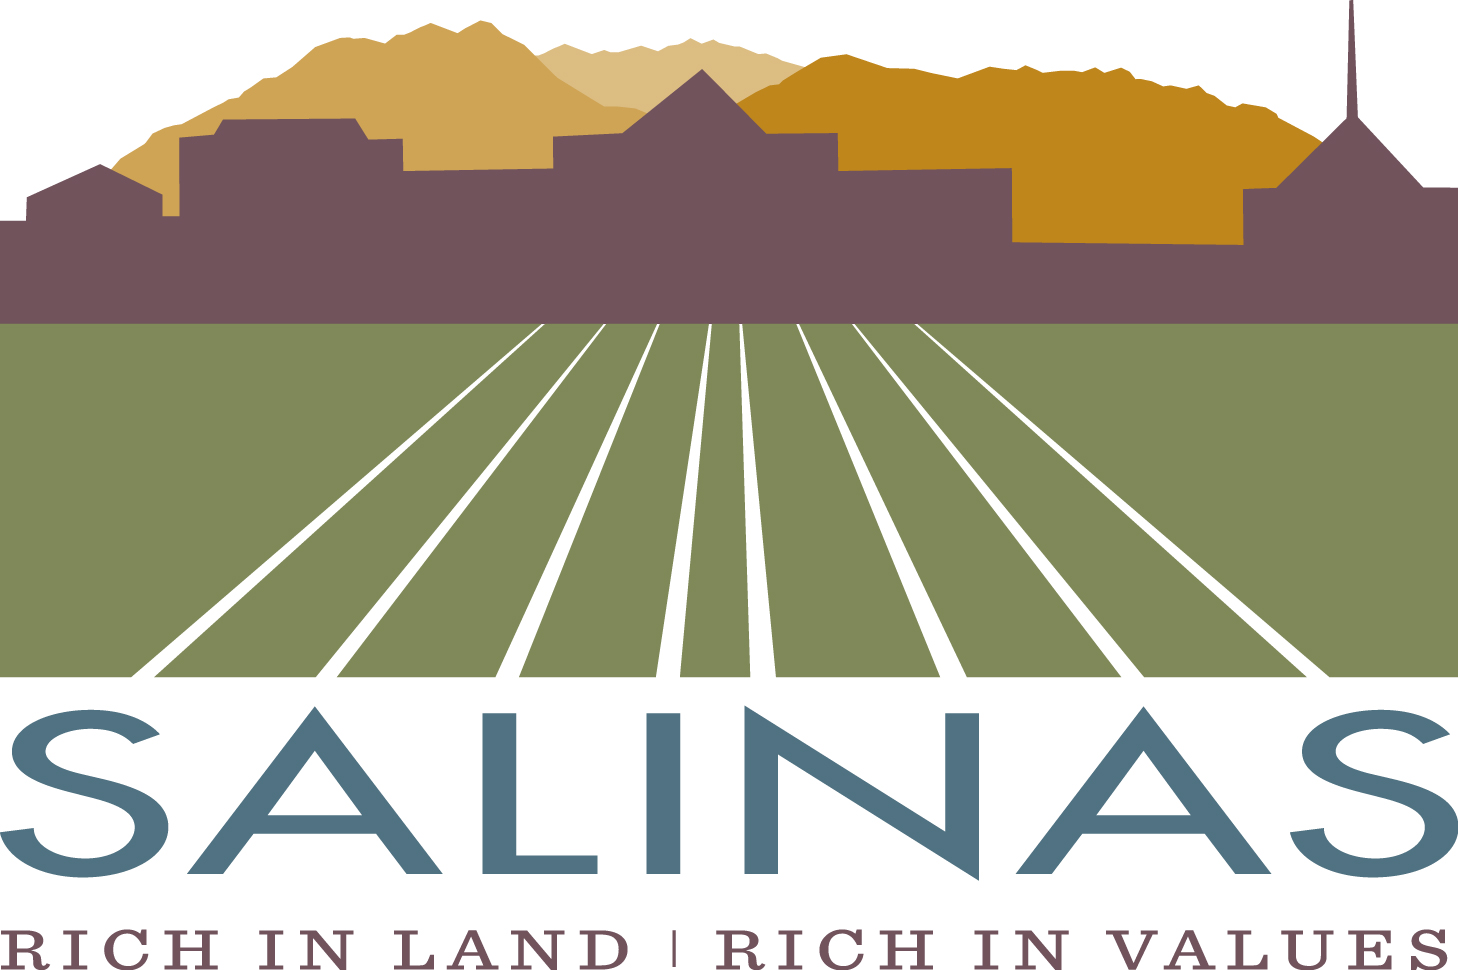 Salinas California Logo - Avant Marketing Community & Destination Branding Case Study